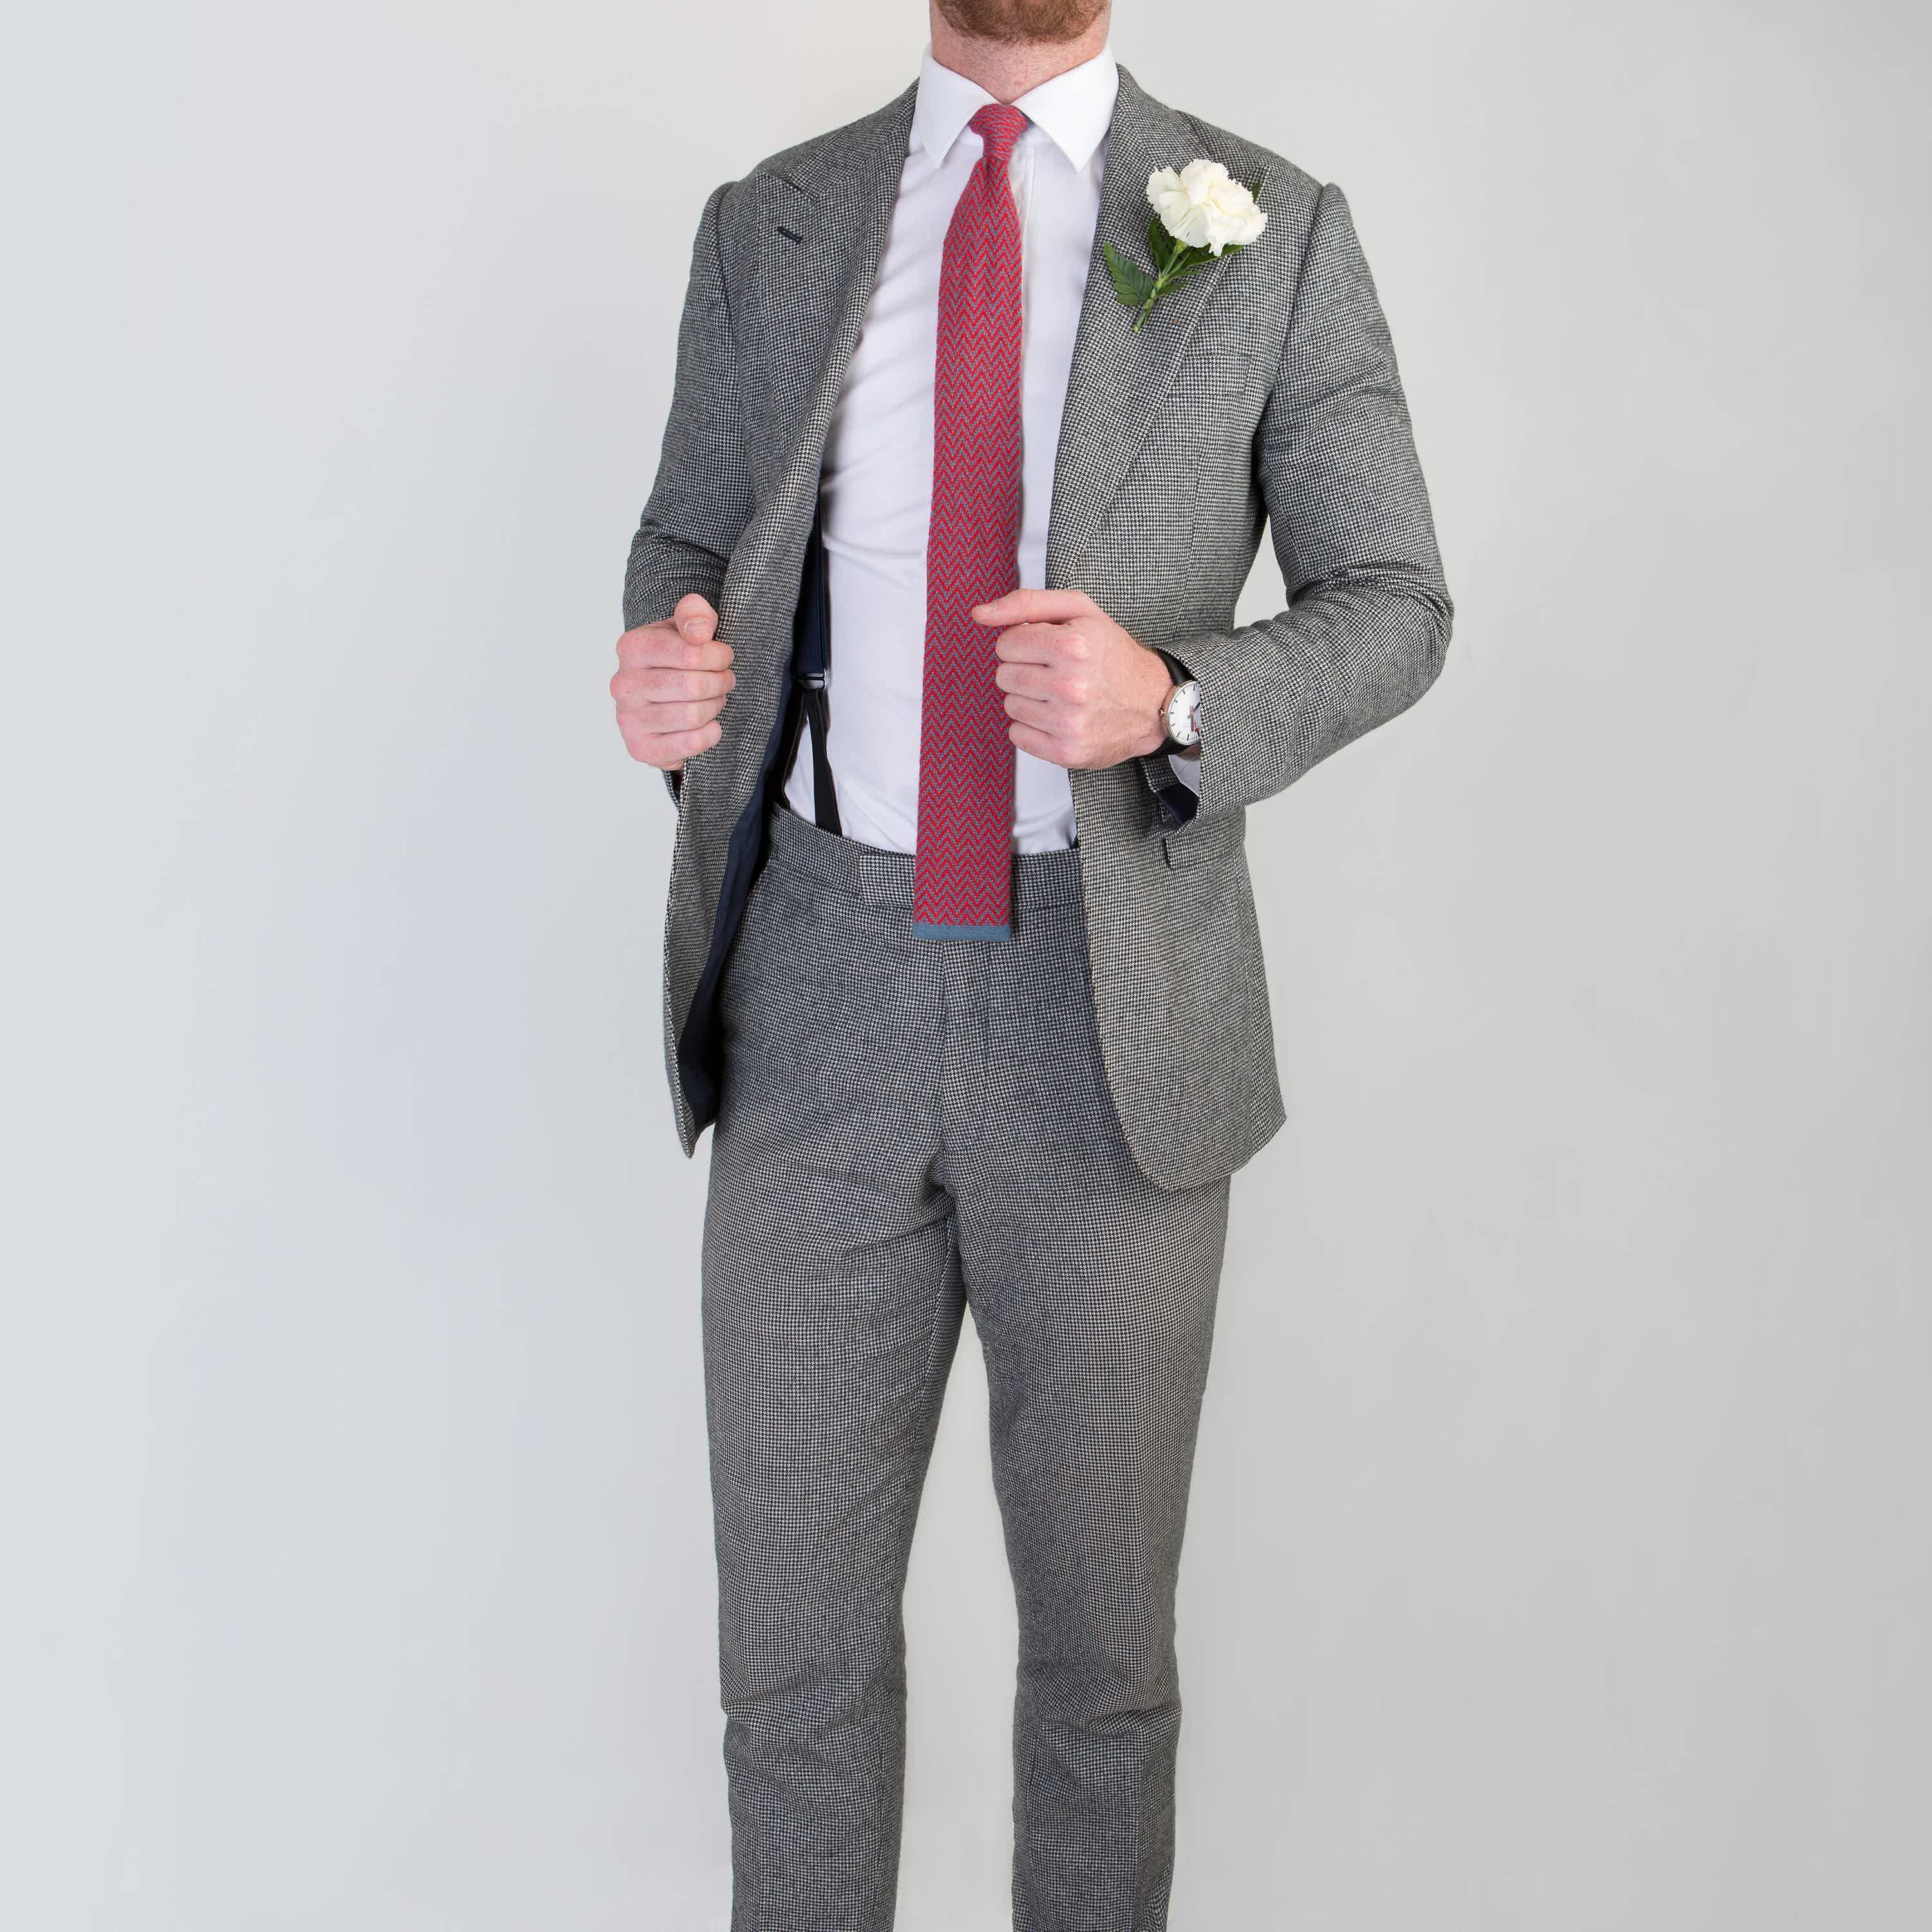 Gentleman wearing single breasted wedding suit by bespoke tailors Mullen and Mullen